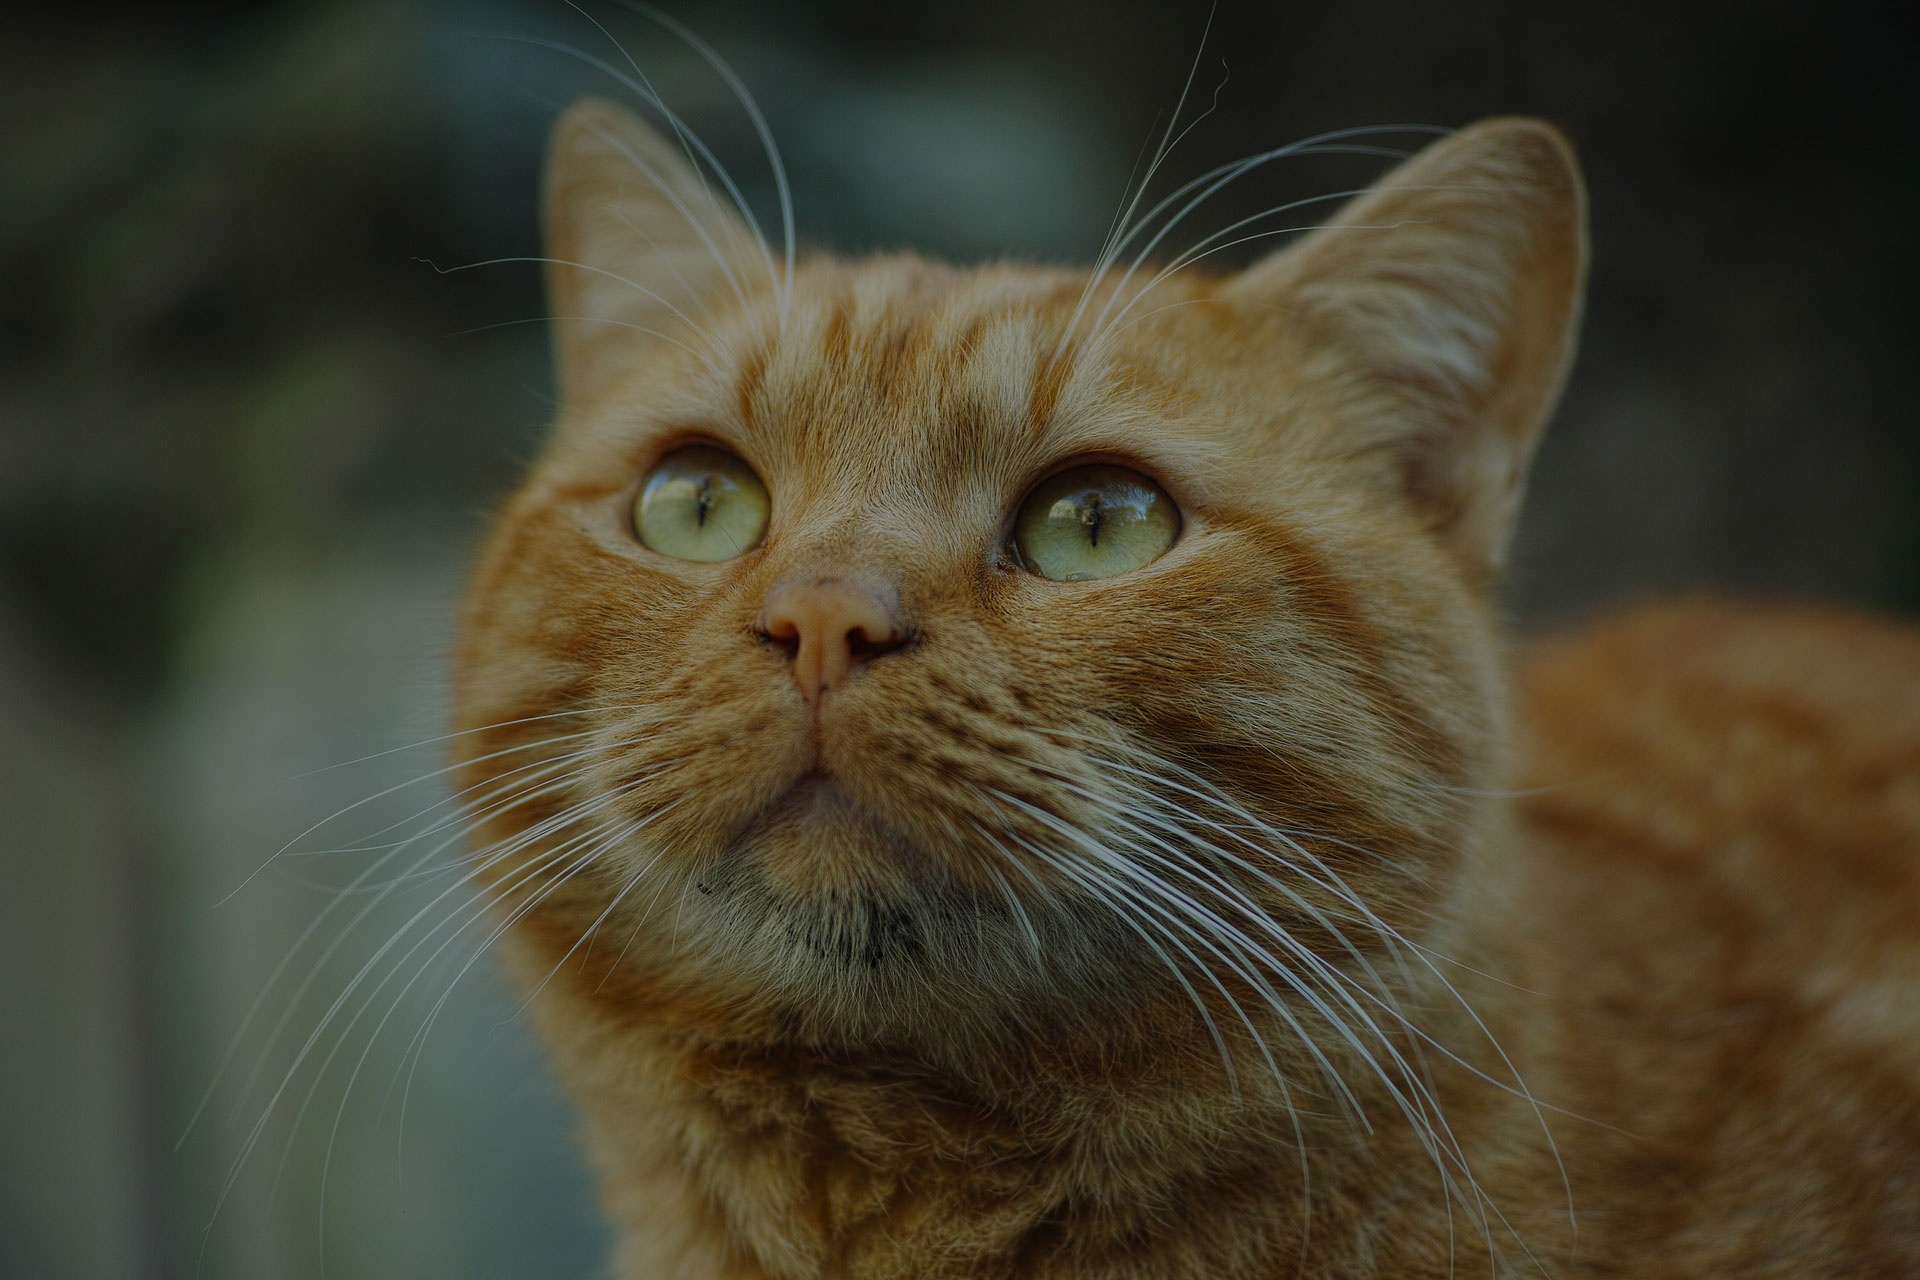 portrait of orange tabby cat looking up